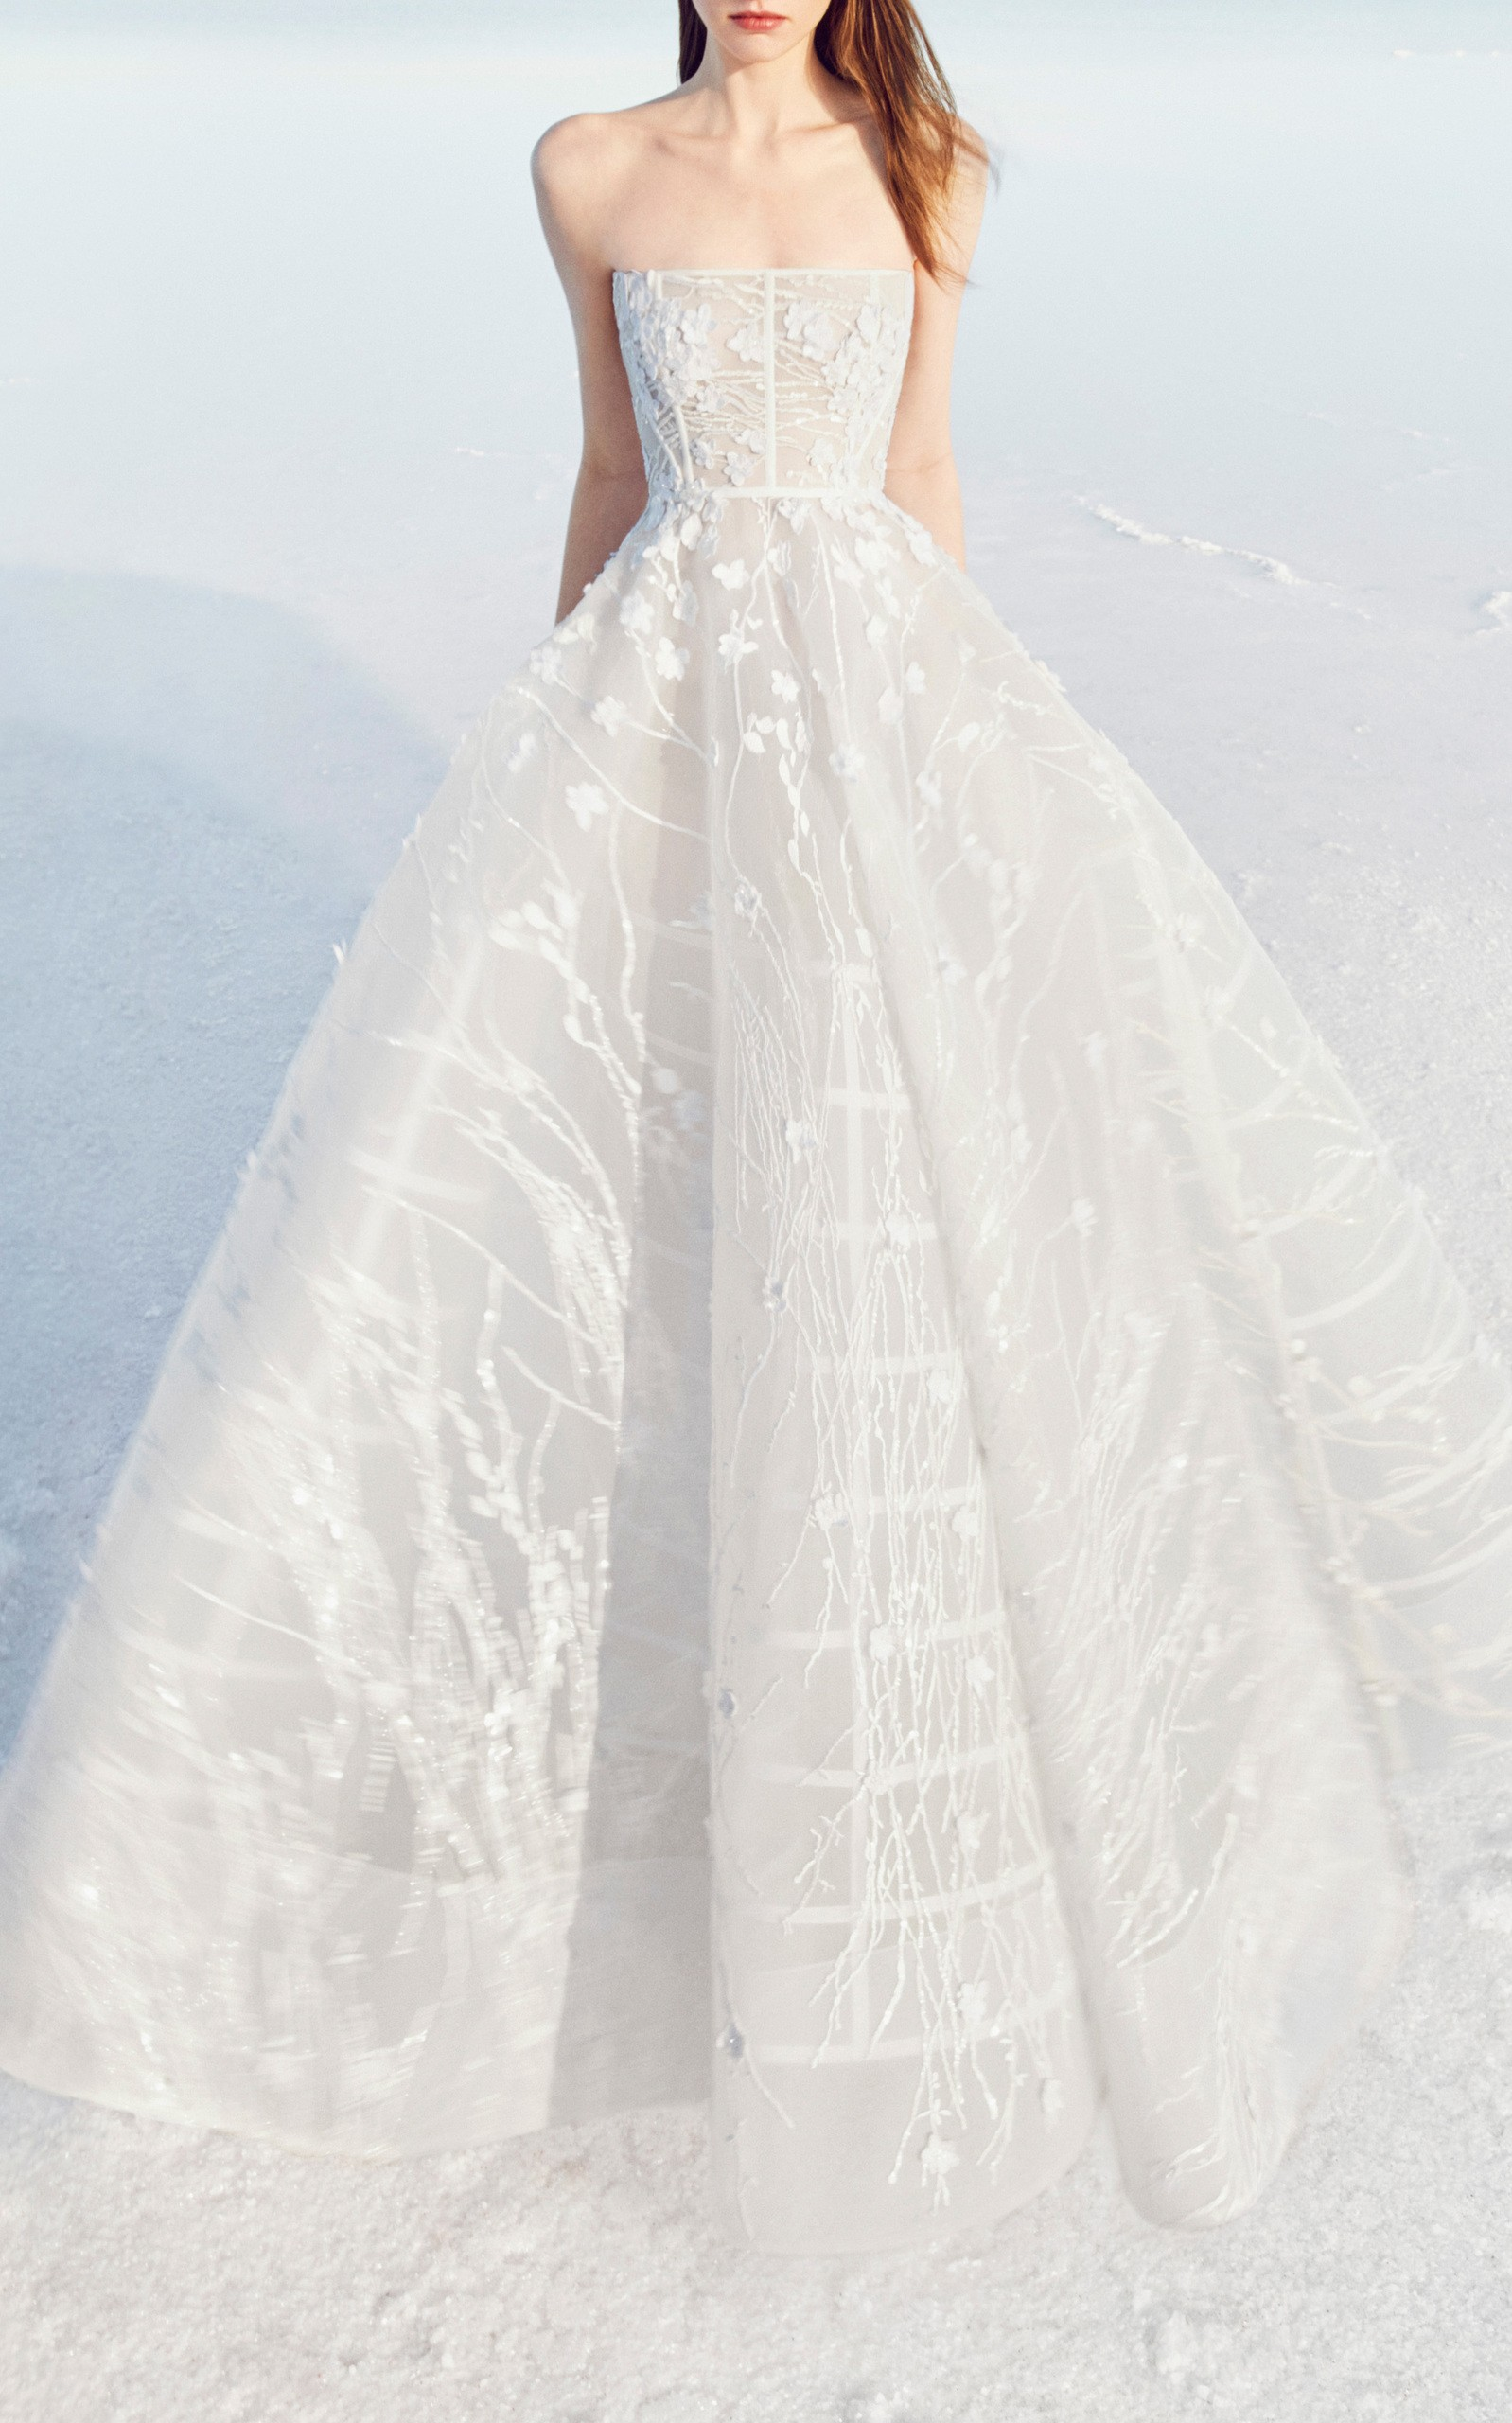 Modern Luxury Wedding Dresses | Alex Perry Bride - BridalPulse